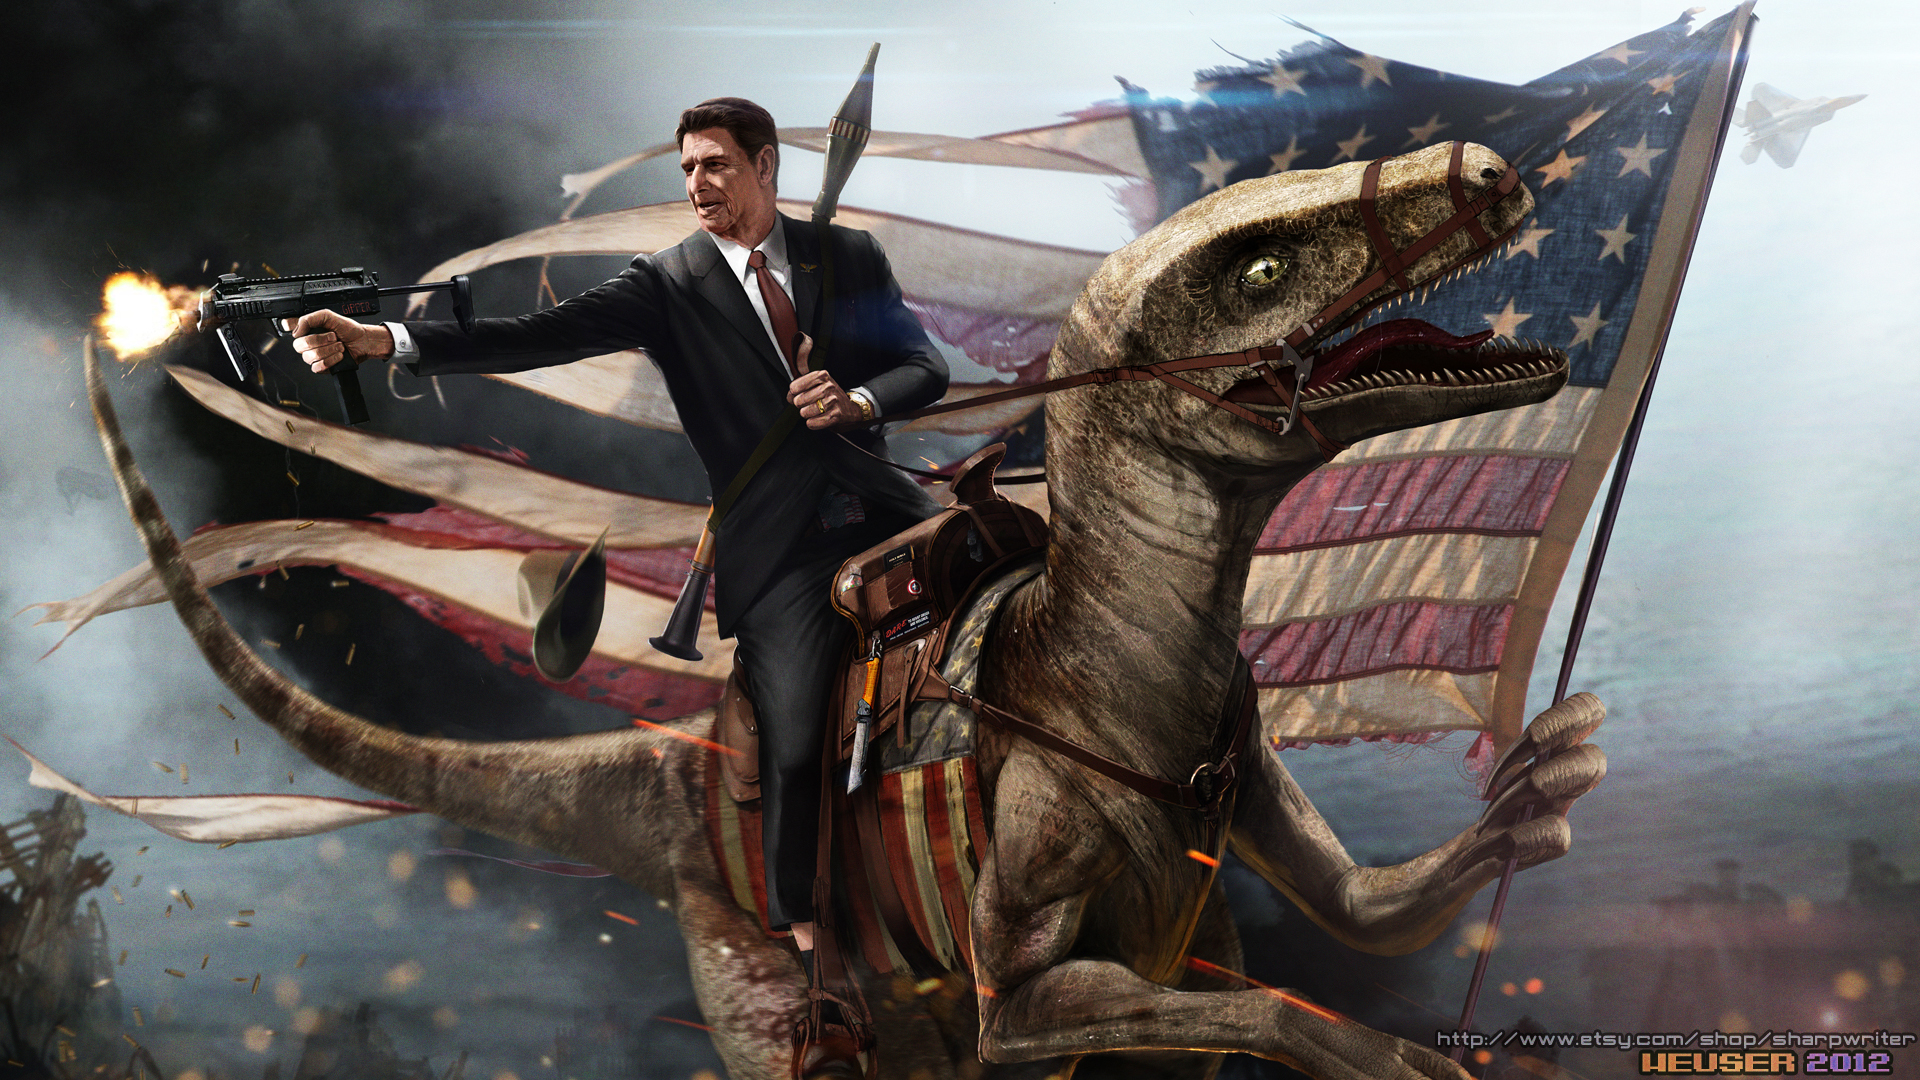 Reagan Riding a Raptor